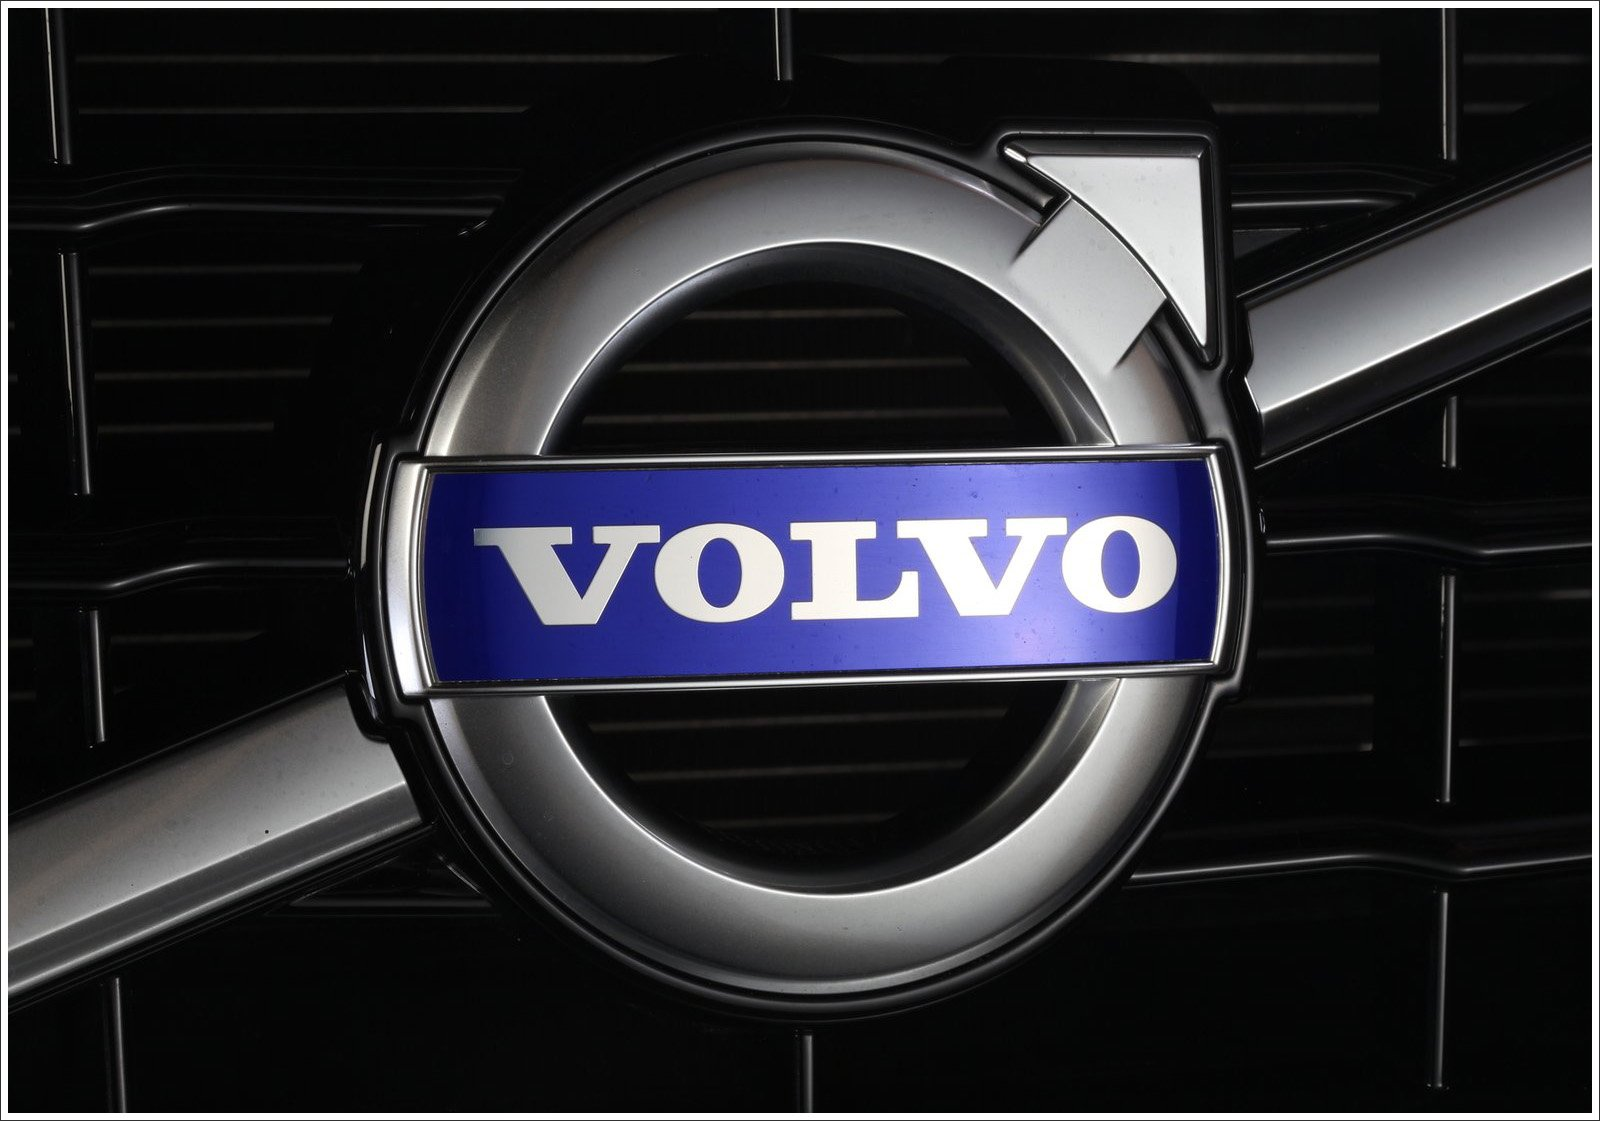 New Car Wallpaper 3d Volvo Logo Meaning And History Latest Models World Cars